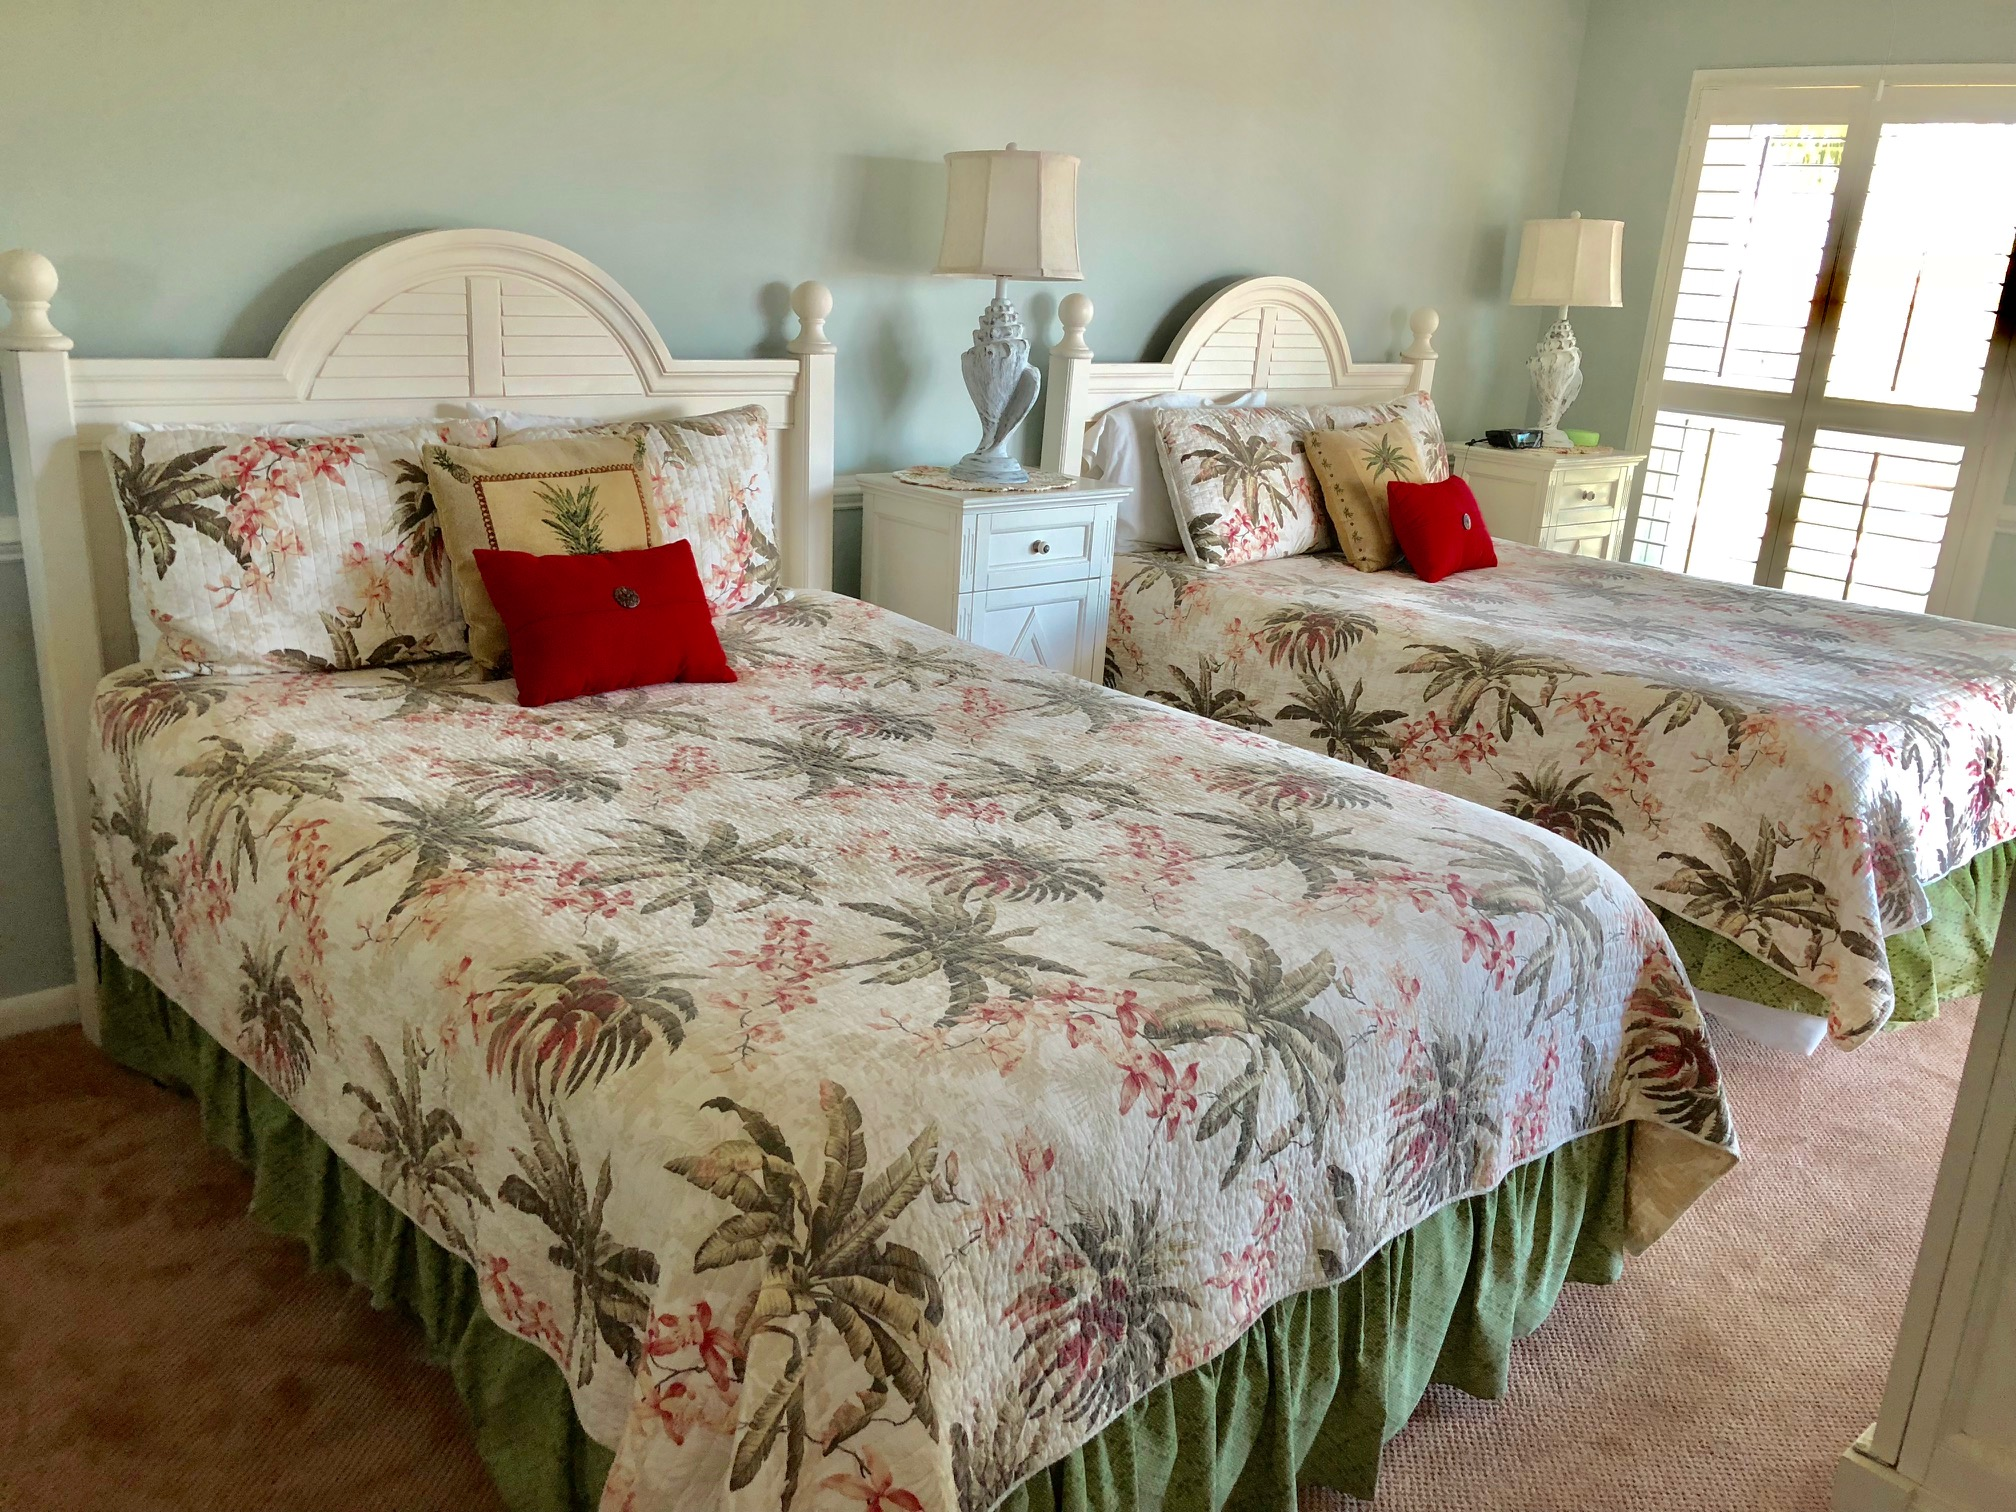 The 1st bedroom has two queen beds, plantation shutters, and a tropical decor.